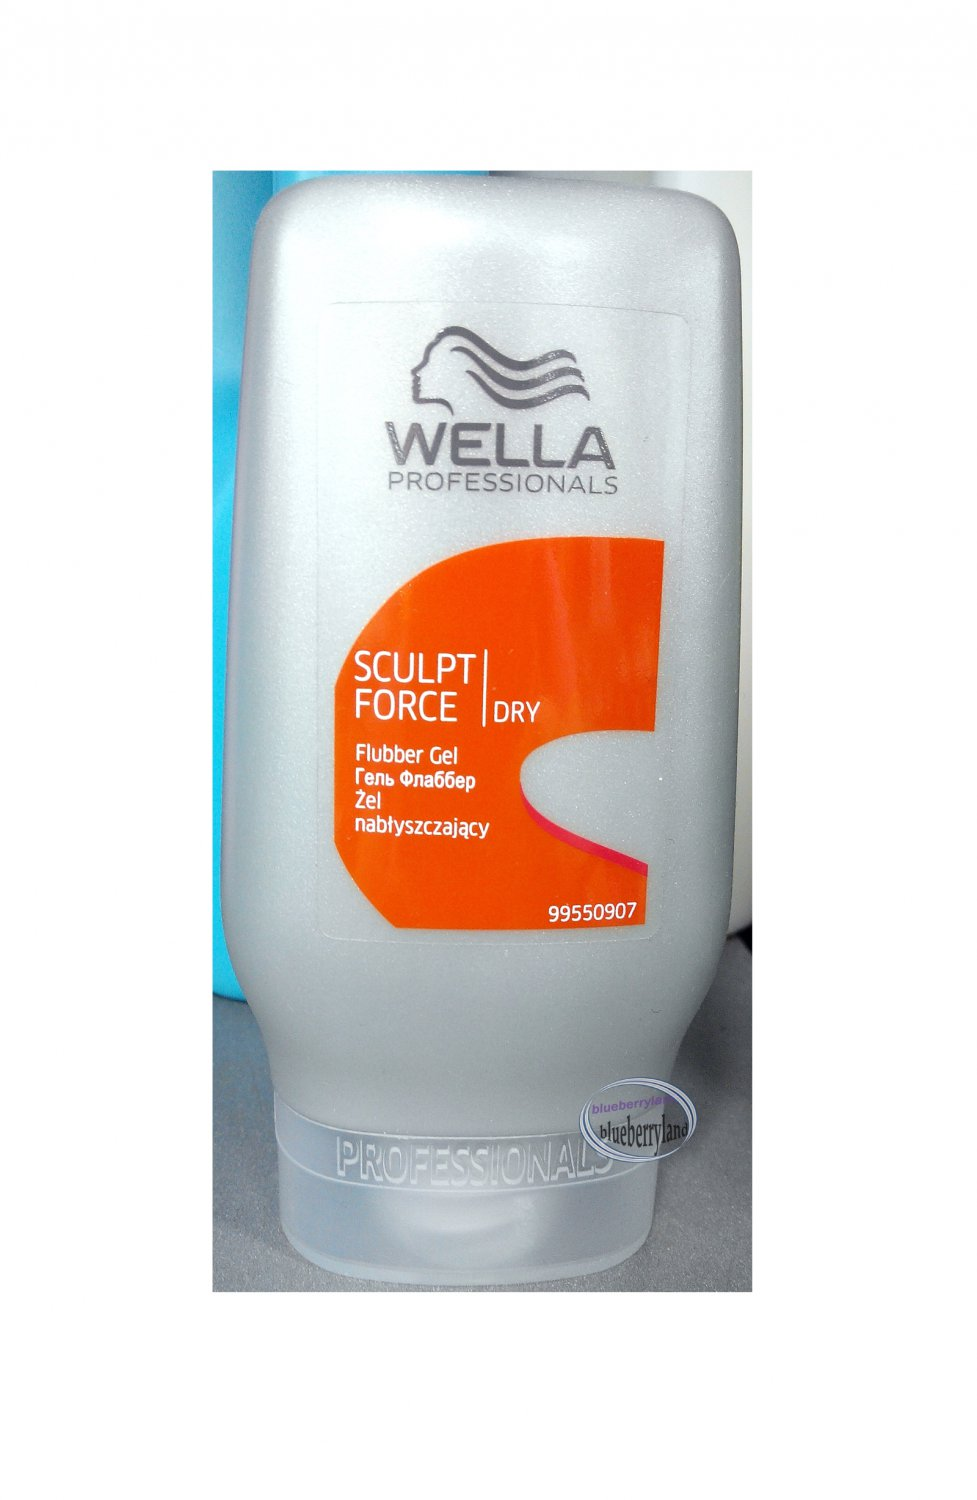 WELLA Professional Hair Sculpt Force Flubber Gel 125ml Dry Strong Hold Level 4